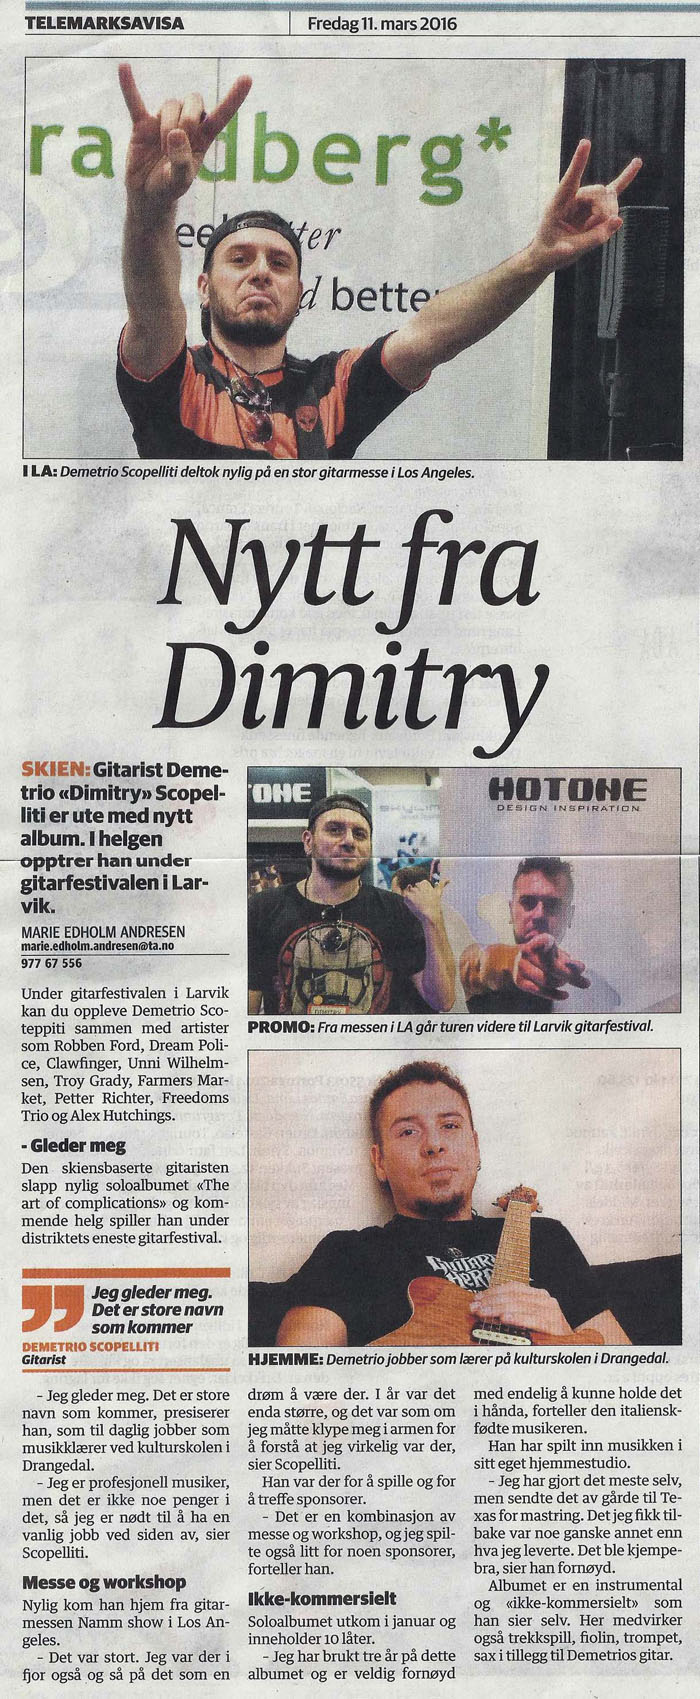 Article on TELEMARKSAVISA Norwegian Newspaper - March 11, 2016